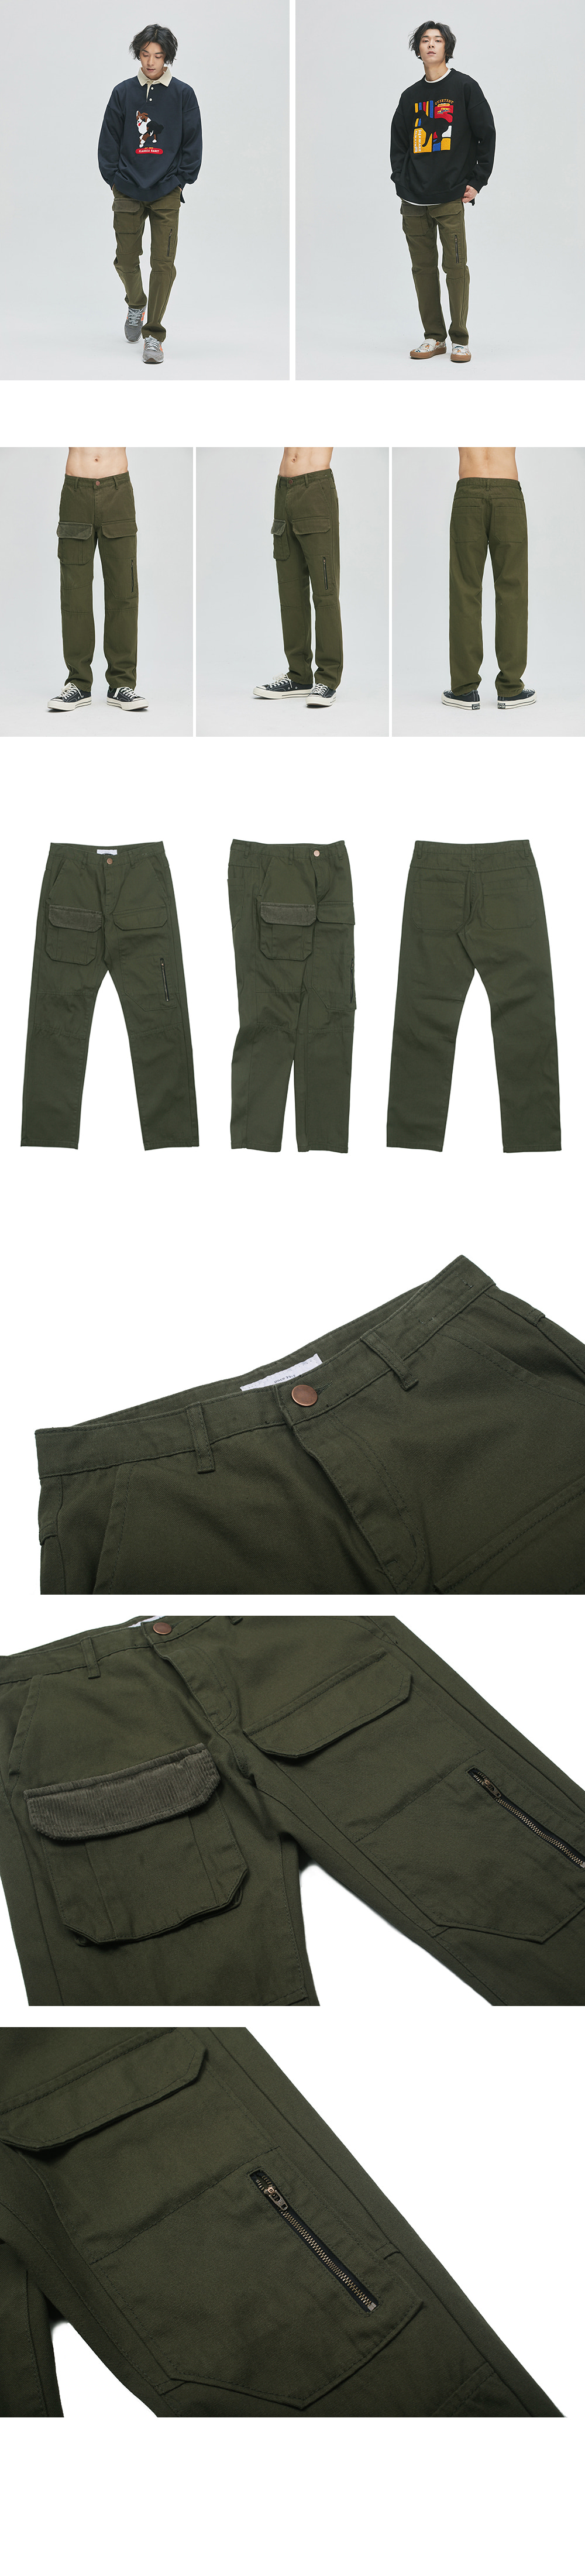 Pocket_Fatigue_Pants_khk_1000.jpg